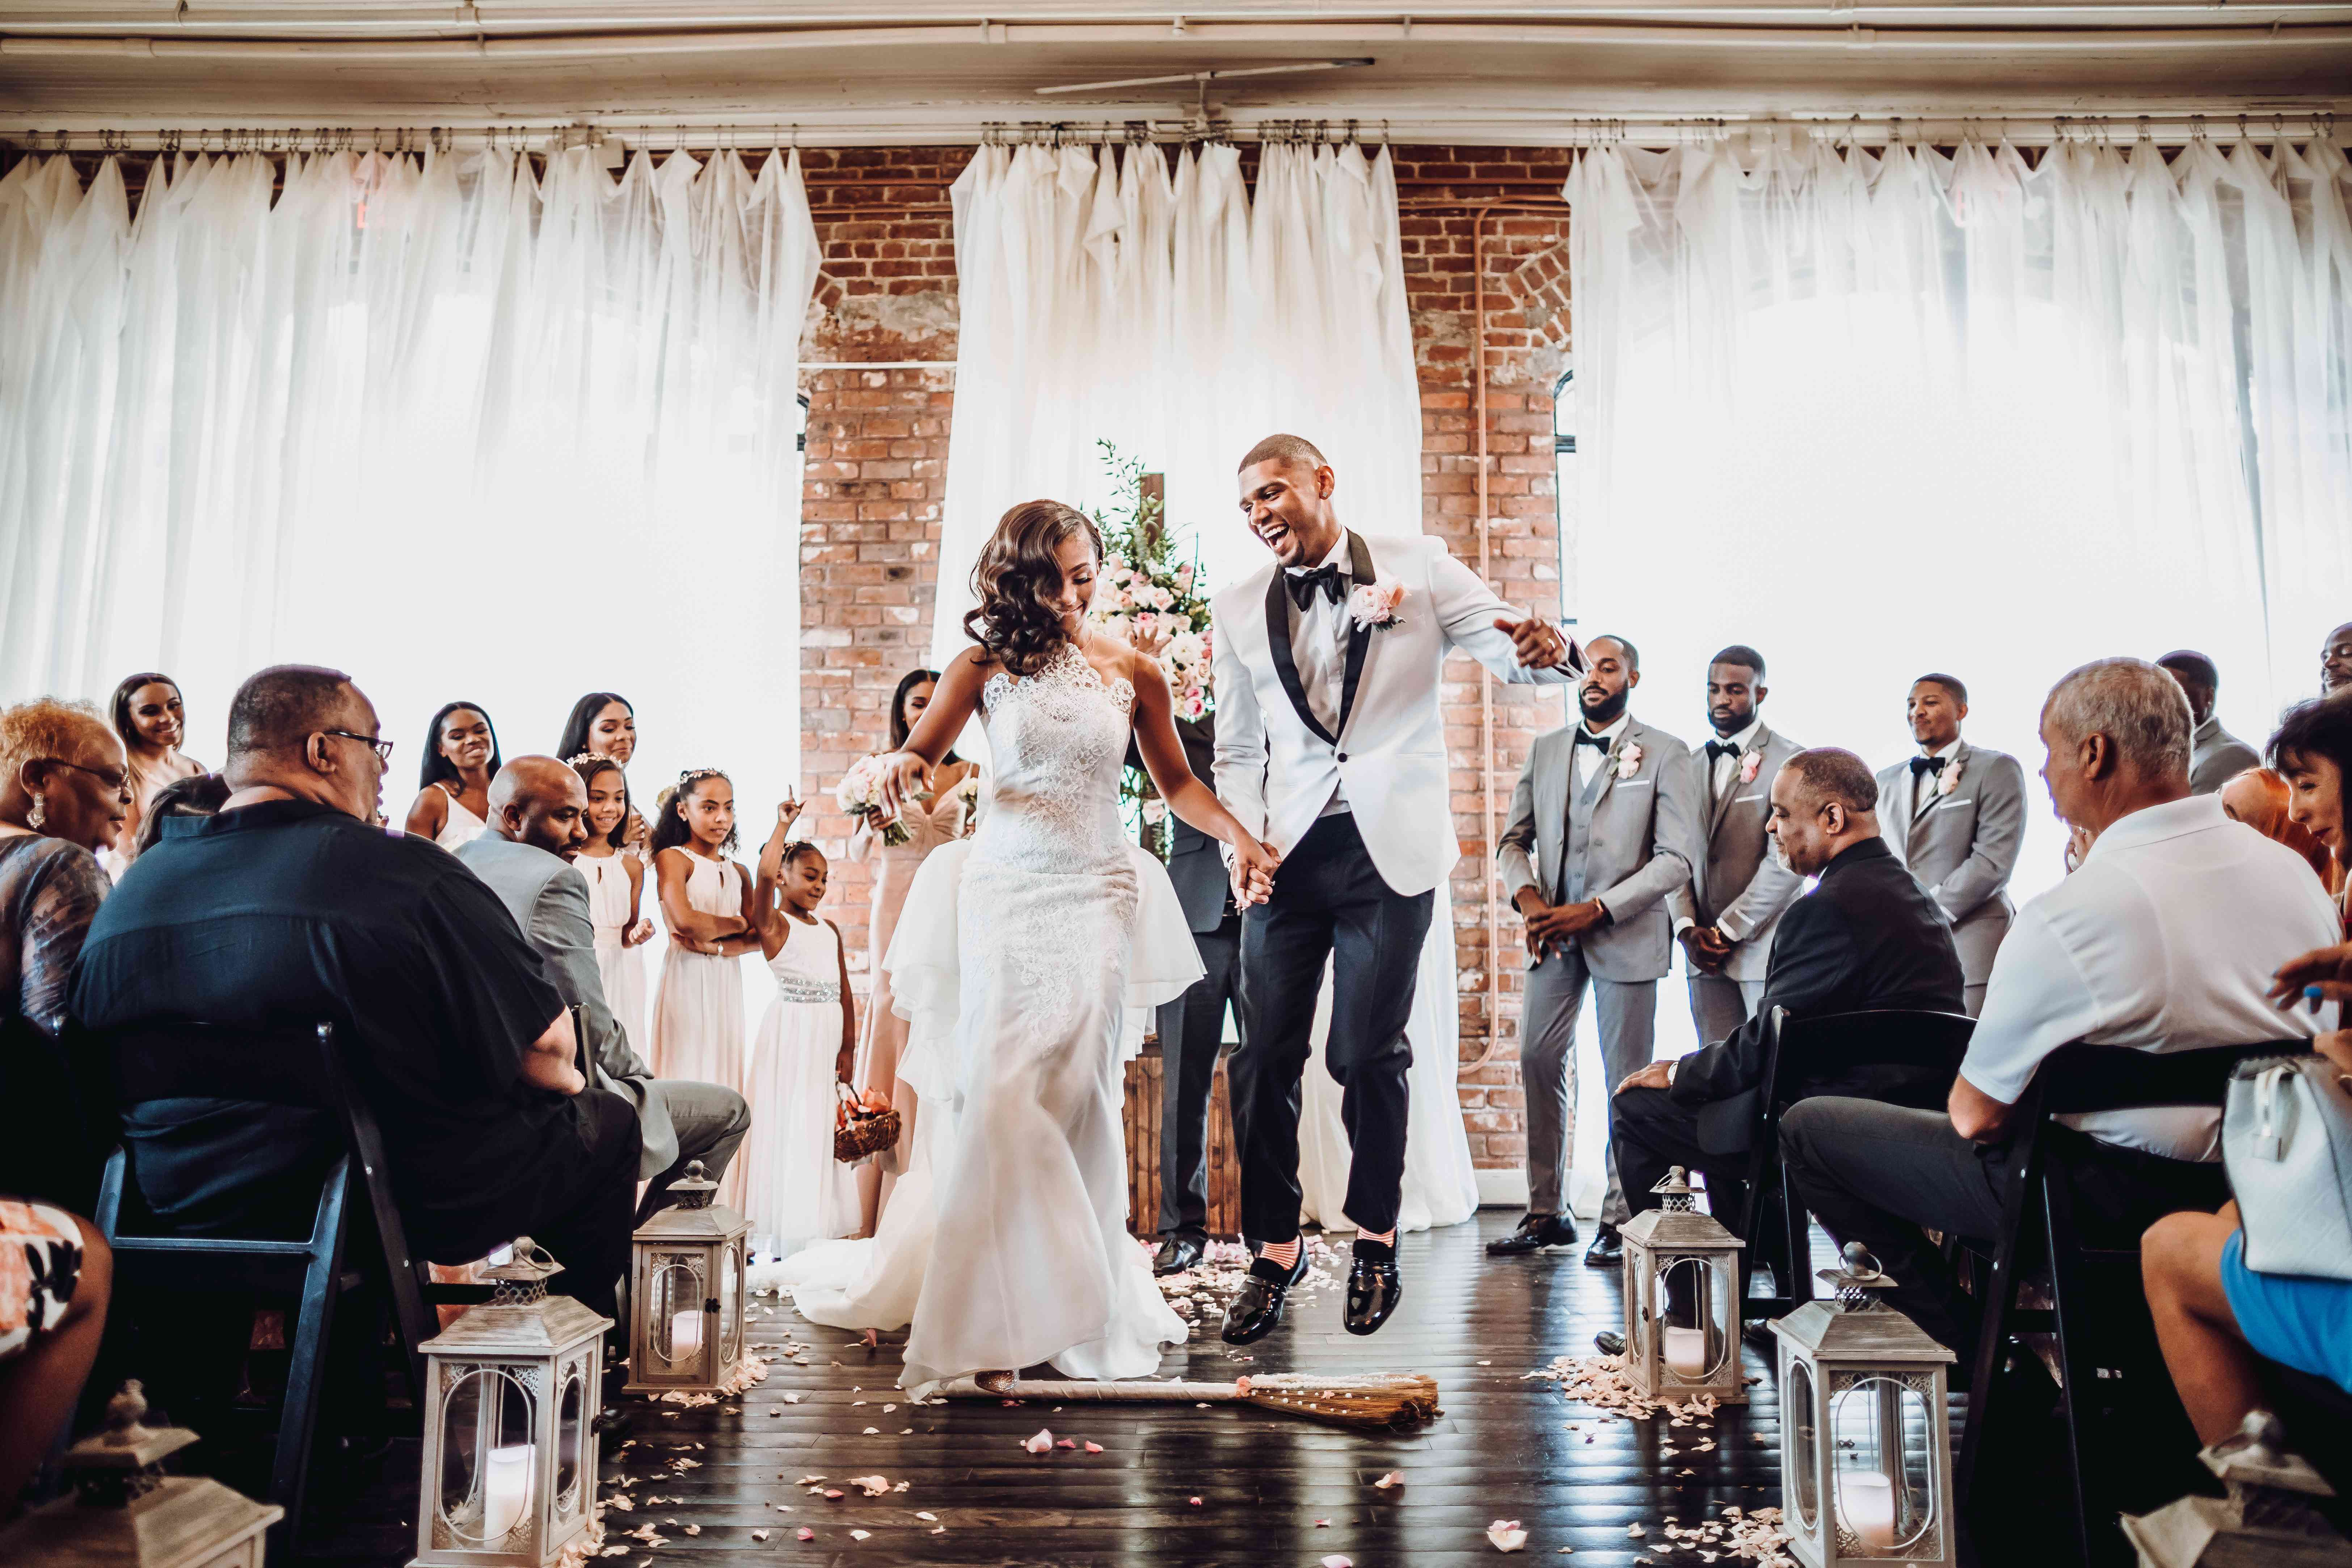 Jumping The Broom From The 18th Century To Present Day